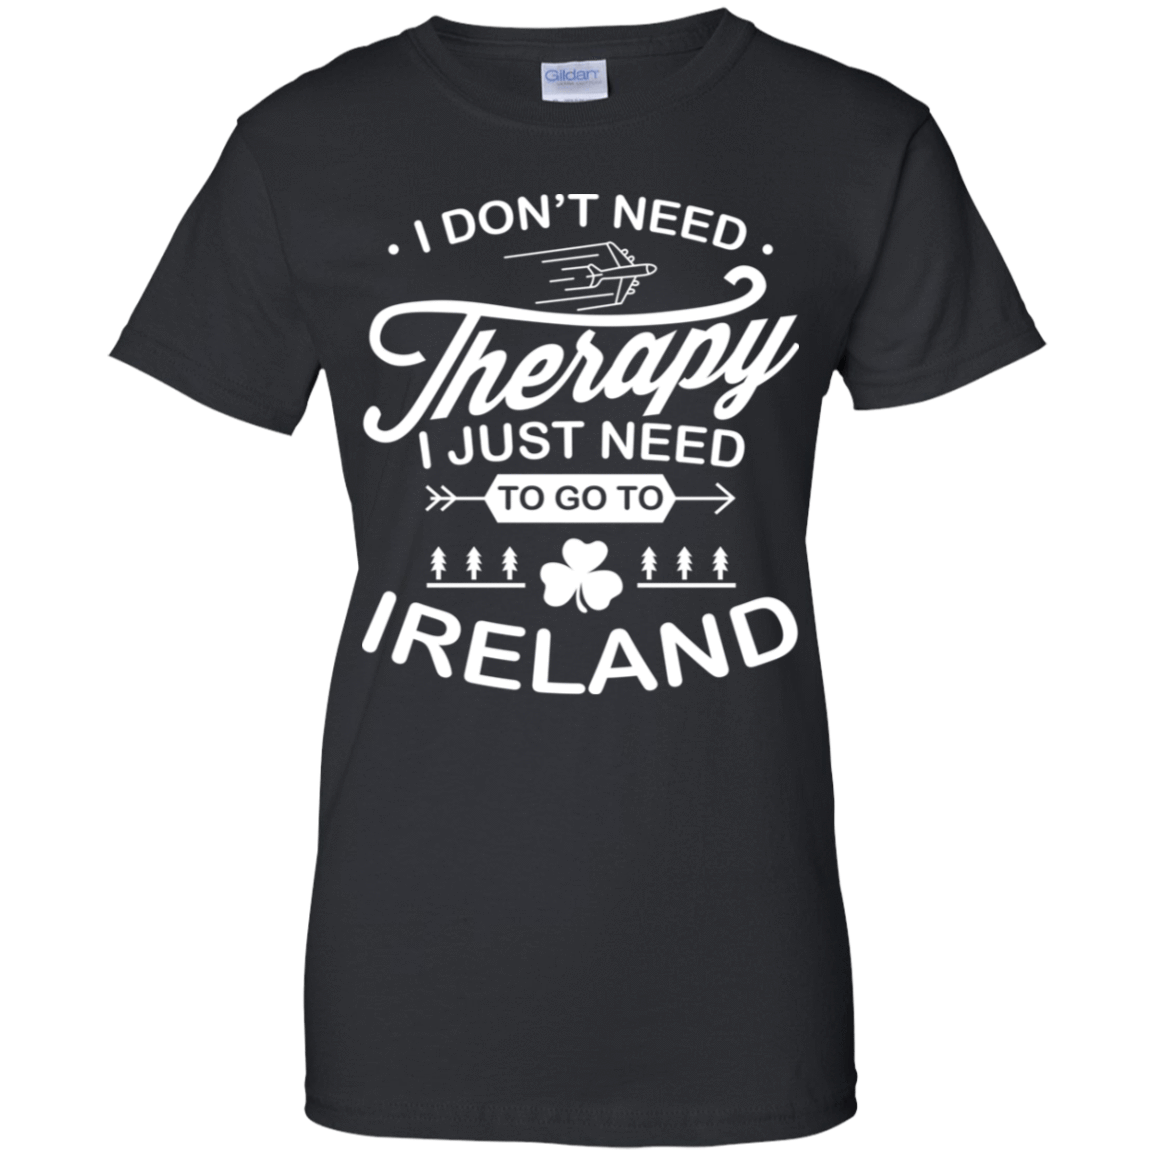 I Don't Need Therapy I Just Need To Go To Ireland 939-9248-73423301-44695 - Tee Ript